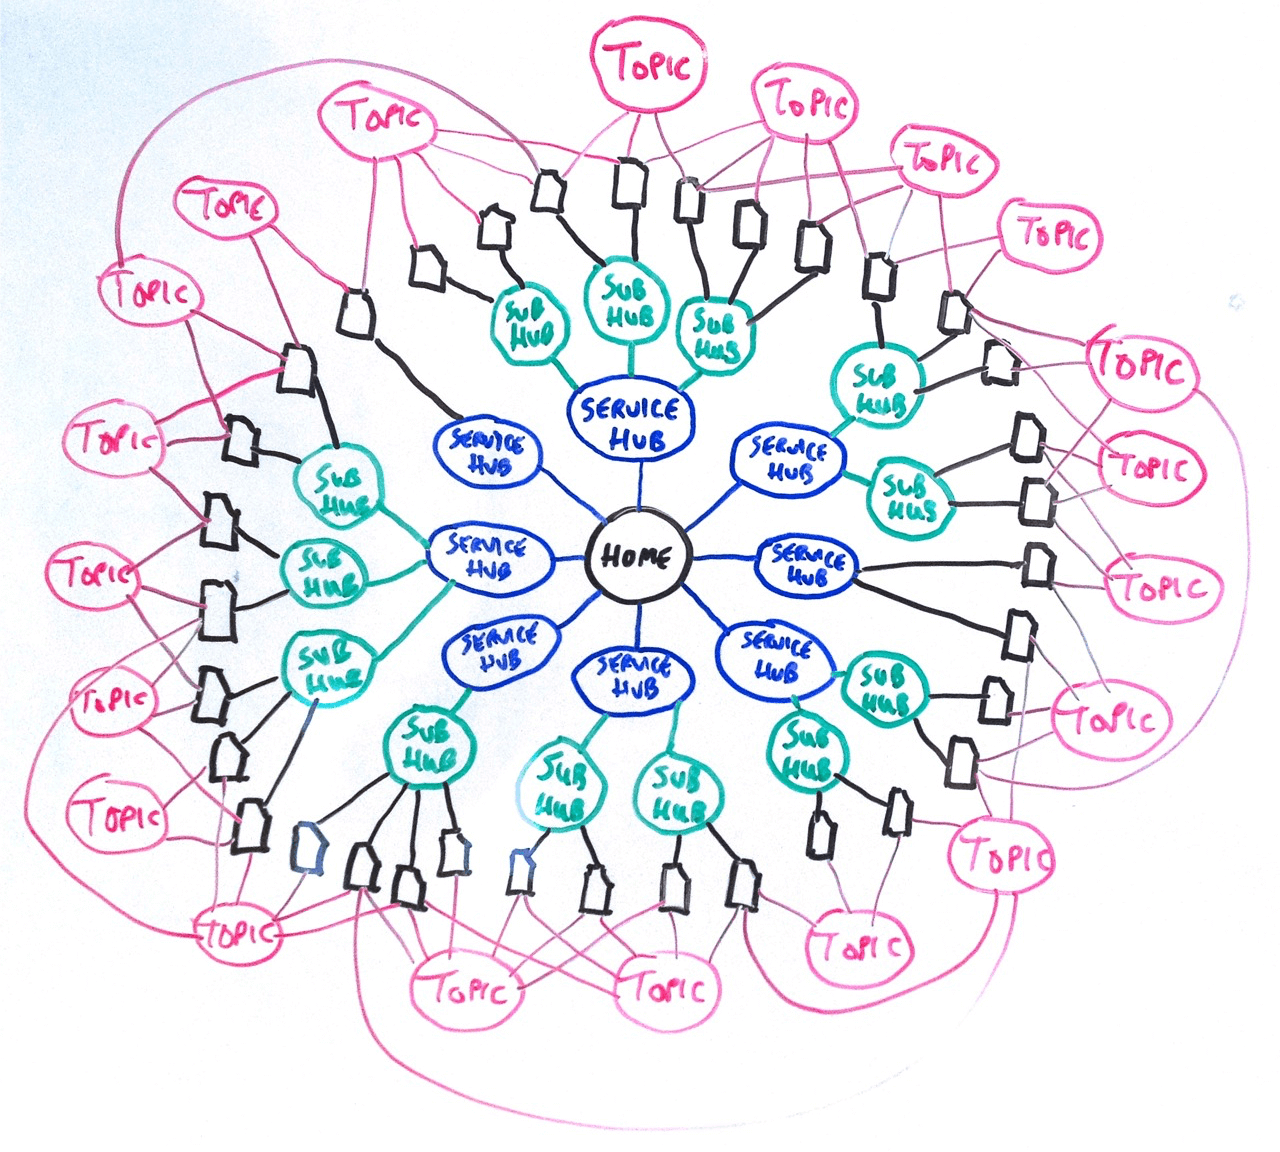 Whiteboard sketch of hub and spoke scheme